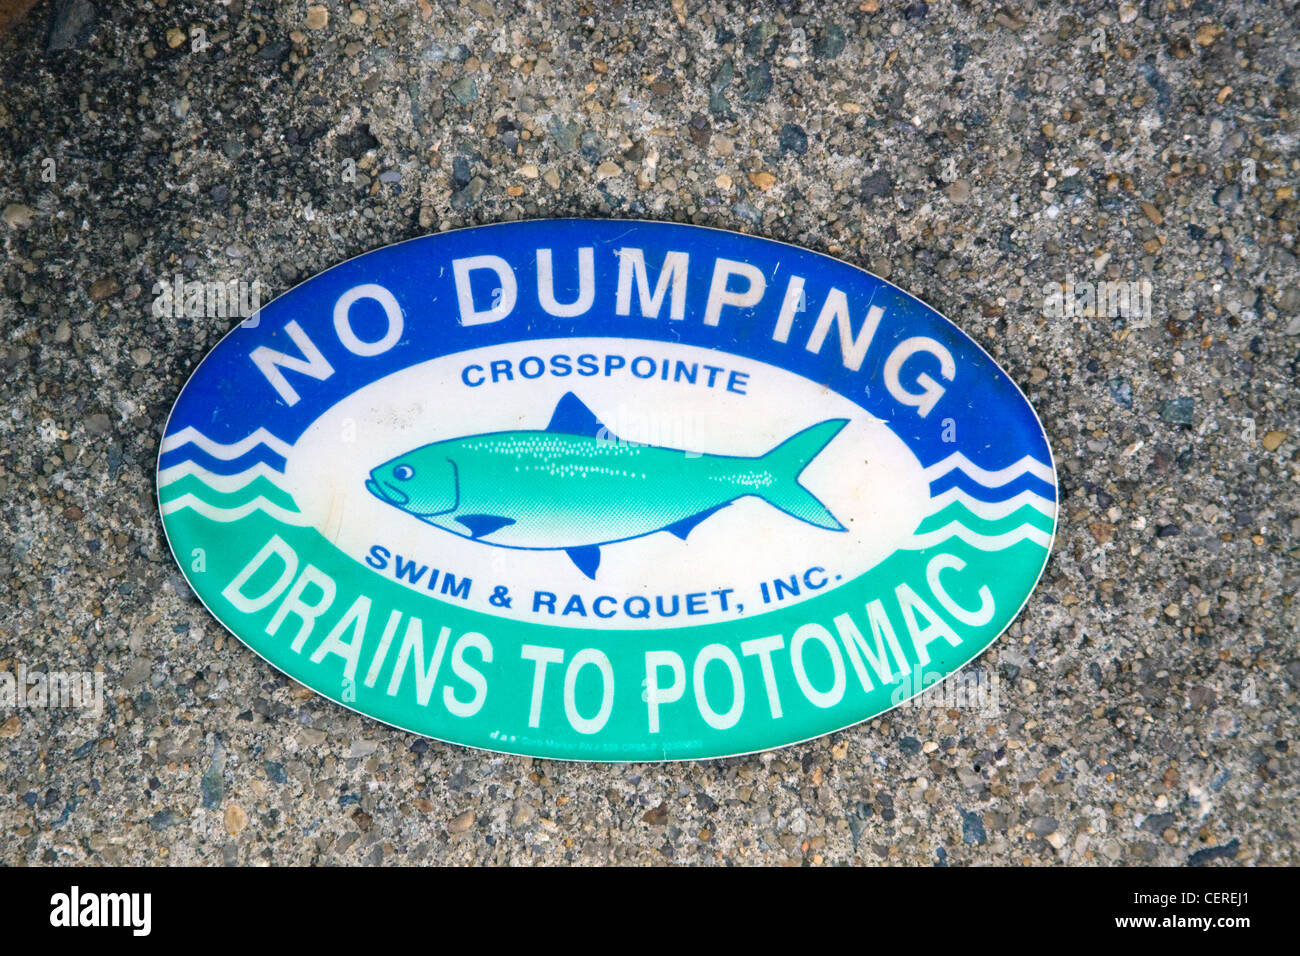 Fairfax County Virginia No Dumping Drains to Potomac sign on top of a storm water drainage catch basin inlet structure - Stock Image